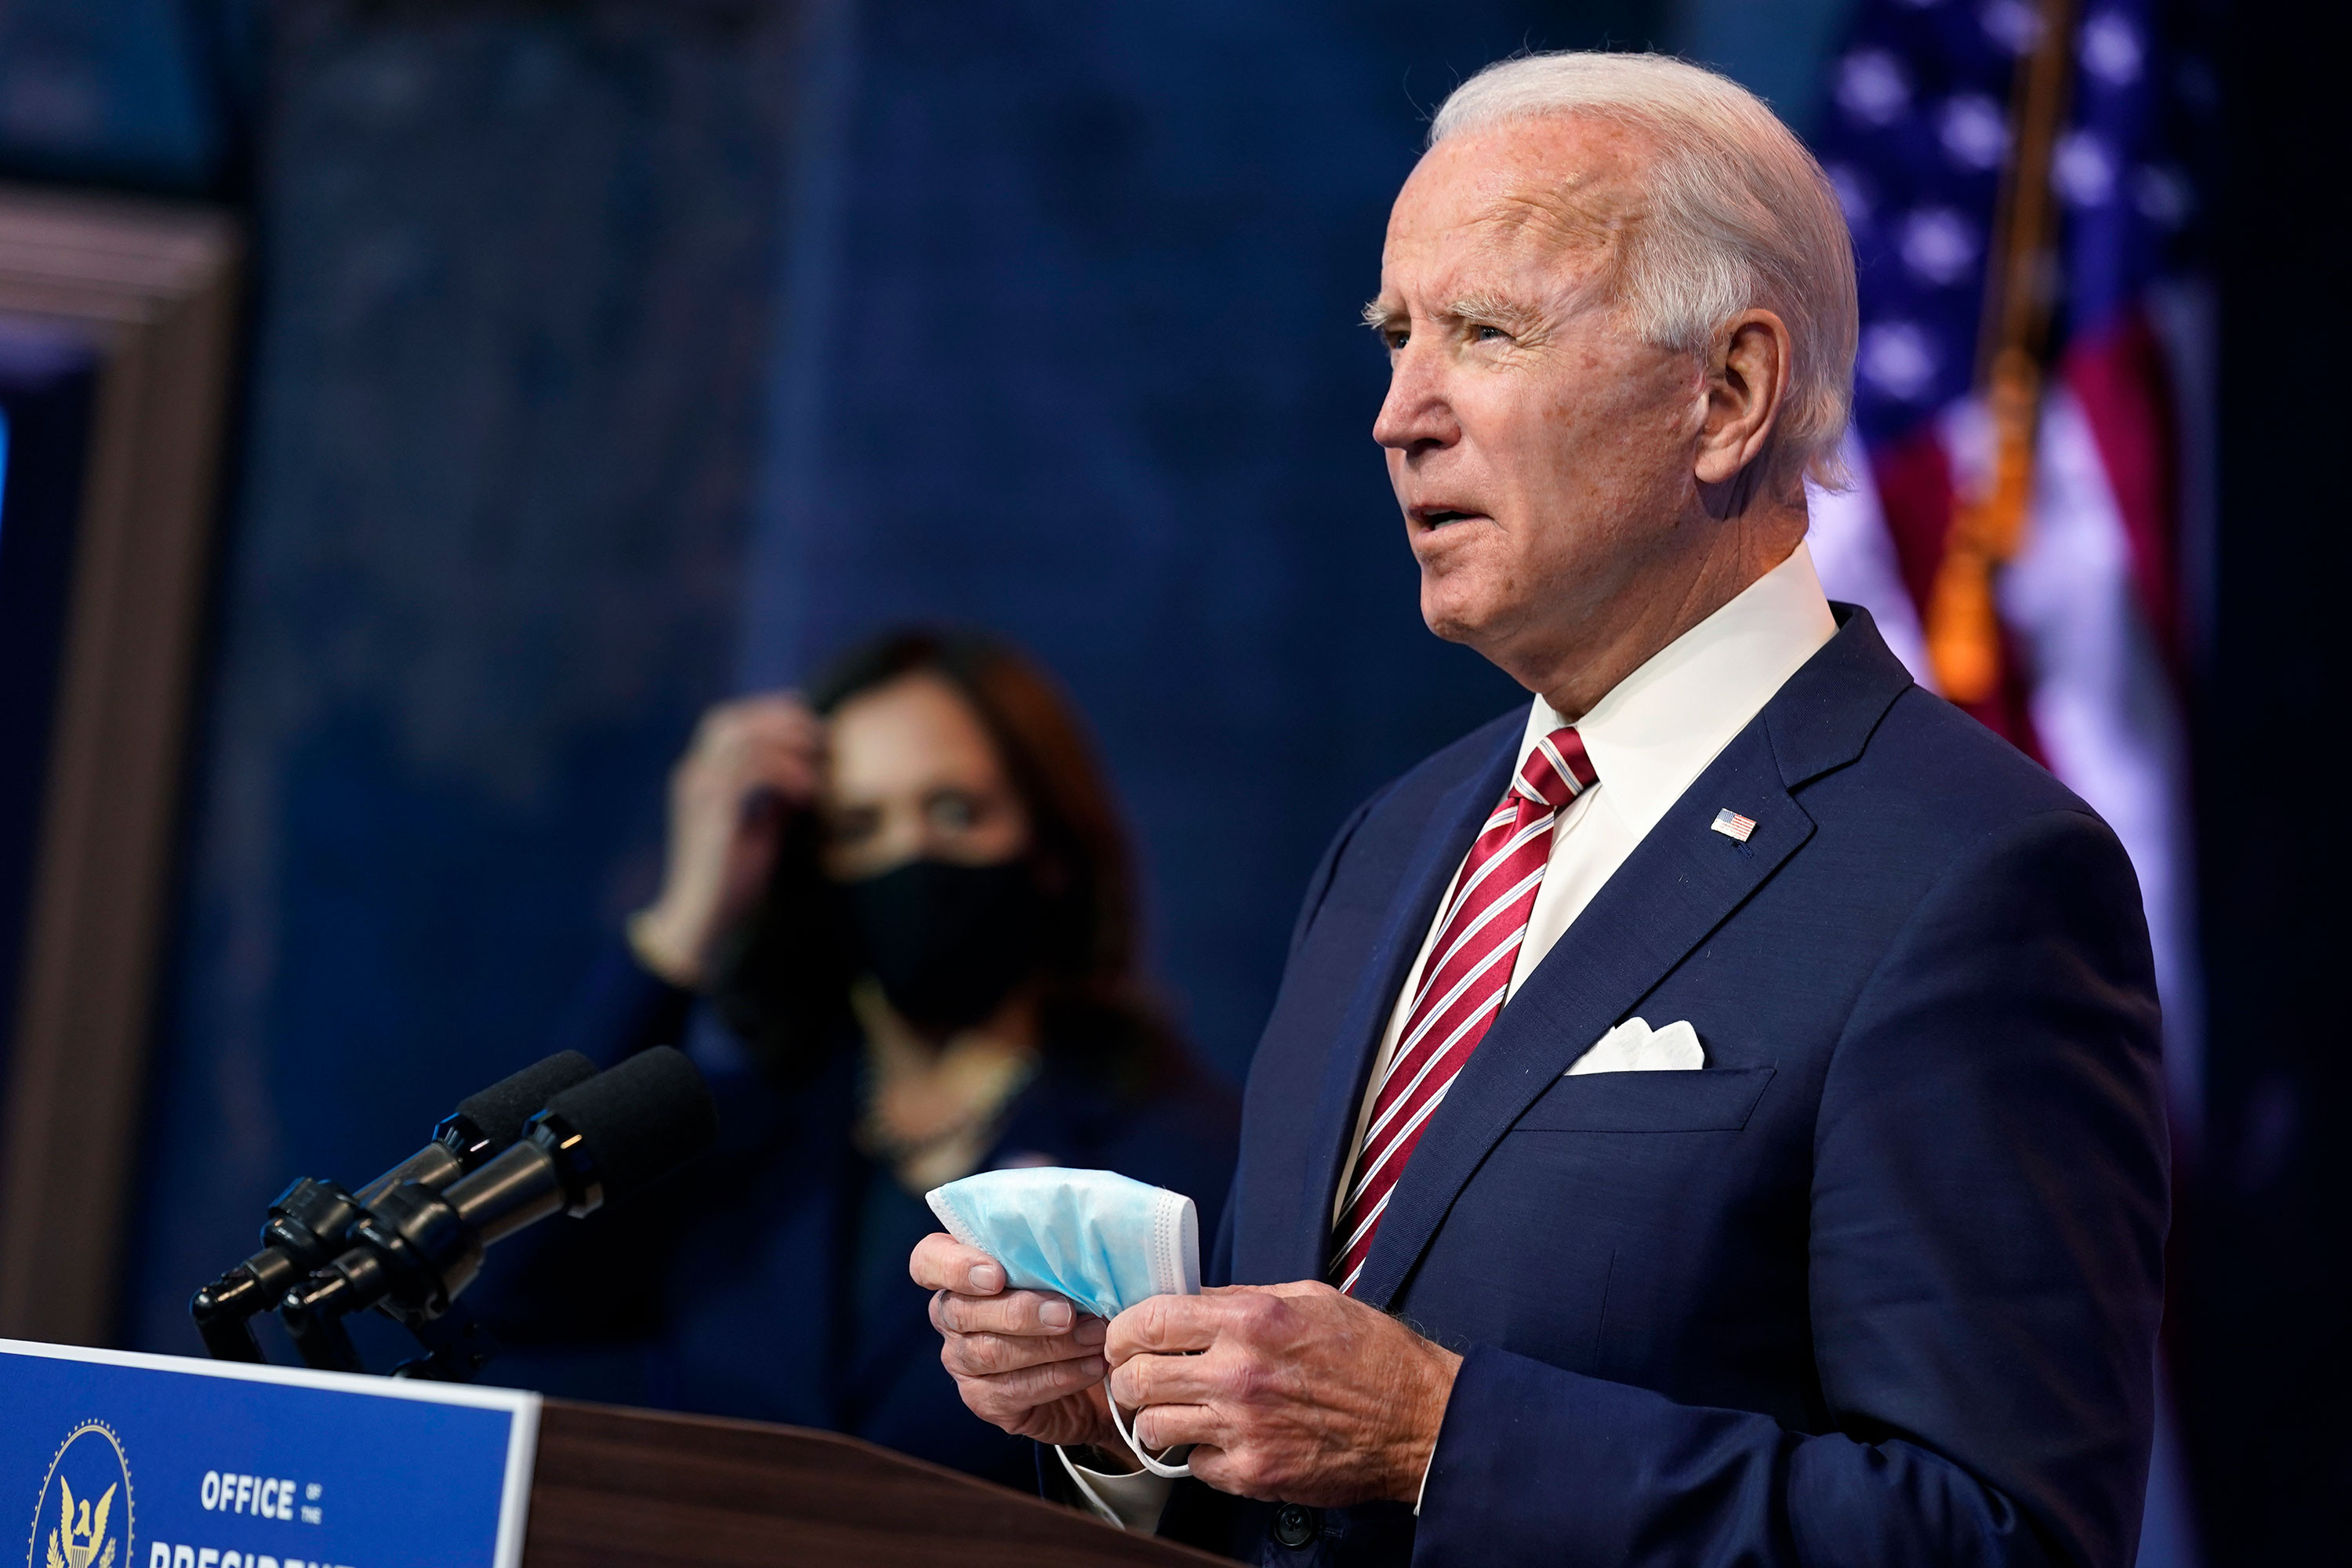 Joe Biden to receive briefing from diplomatic, intel and defense experts**